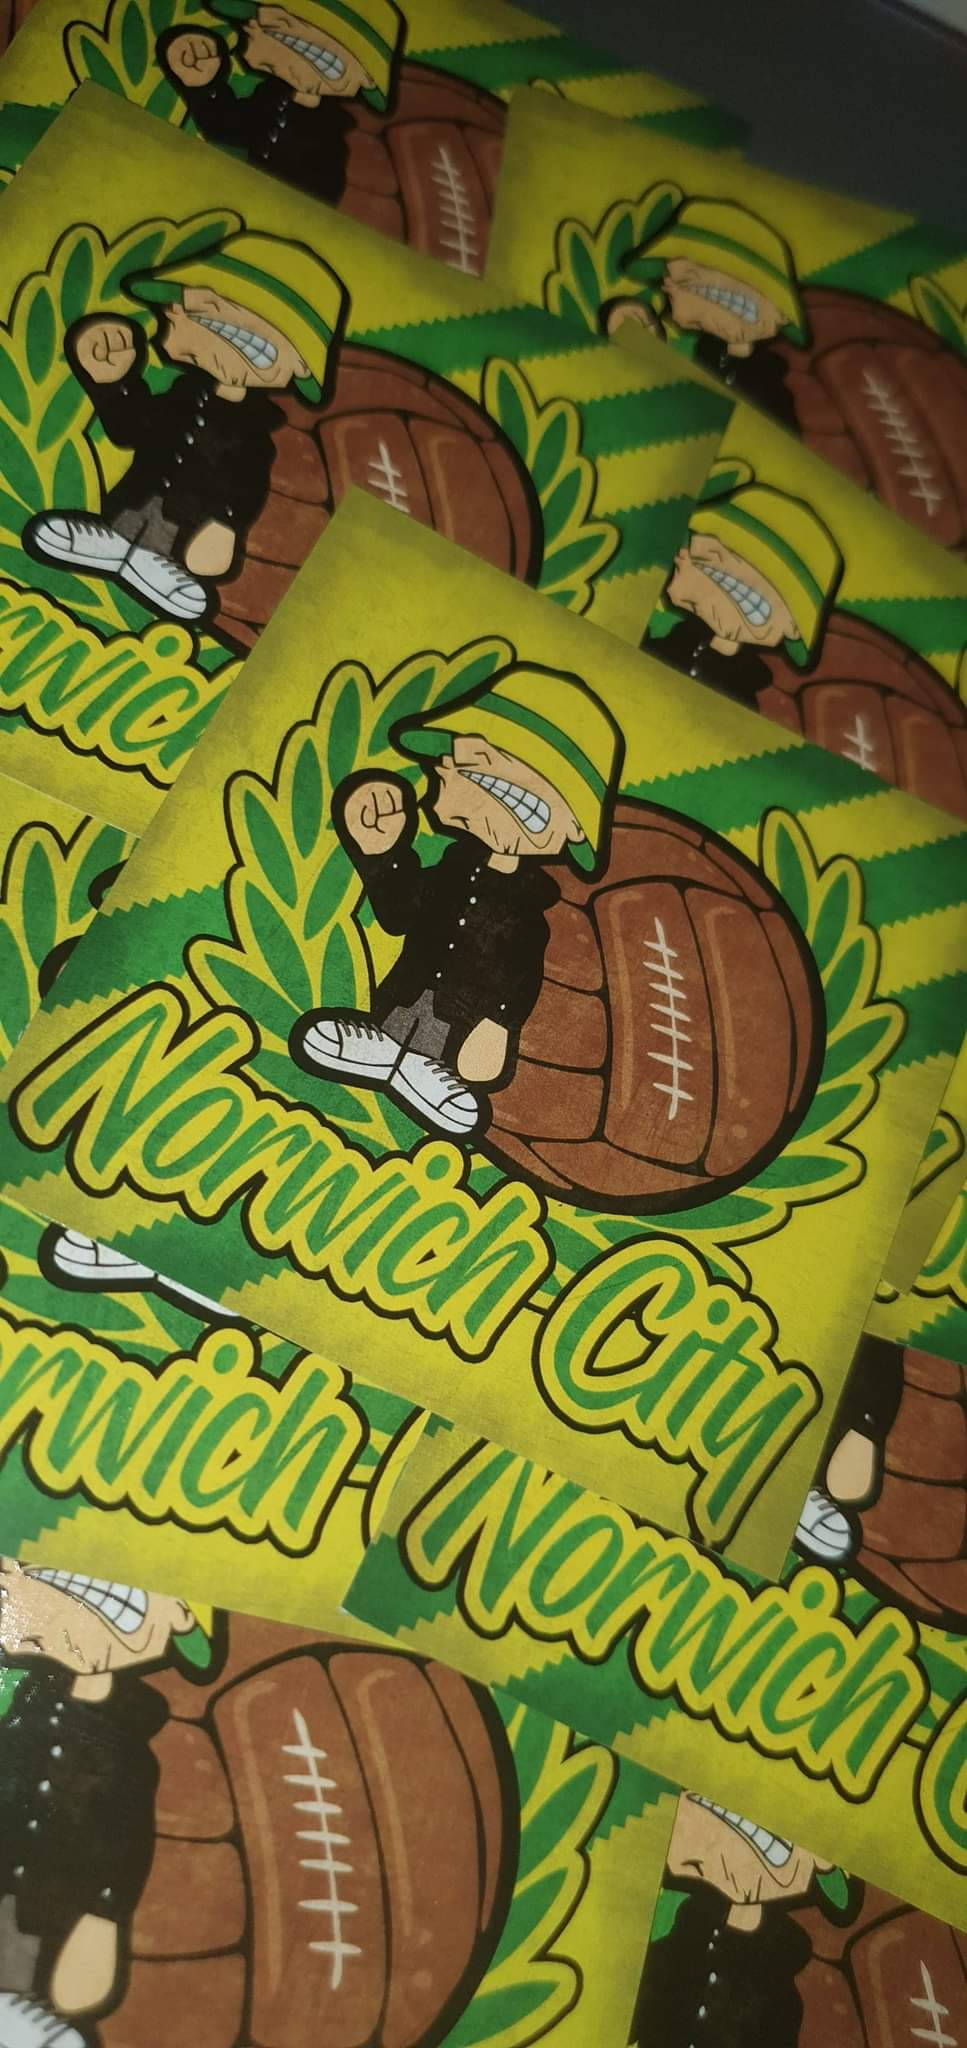 Pack of 25 7x7cm Norwich City Football/ultras stickers.